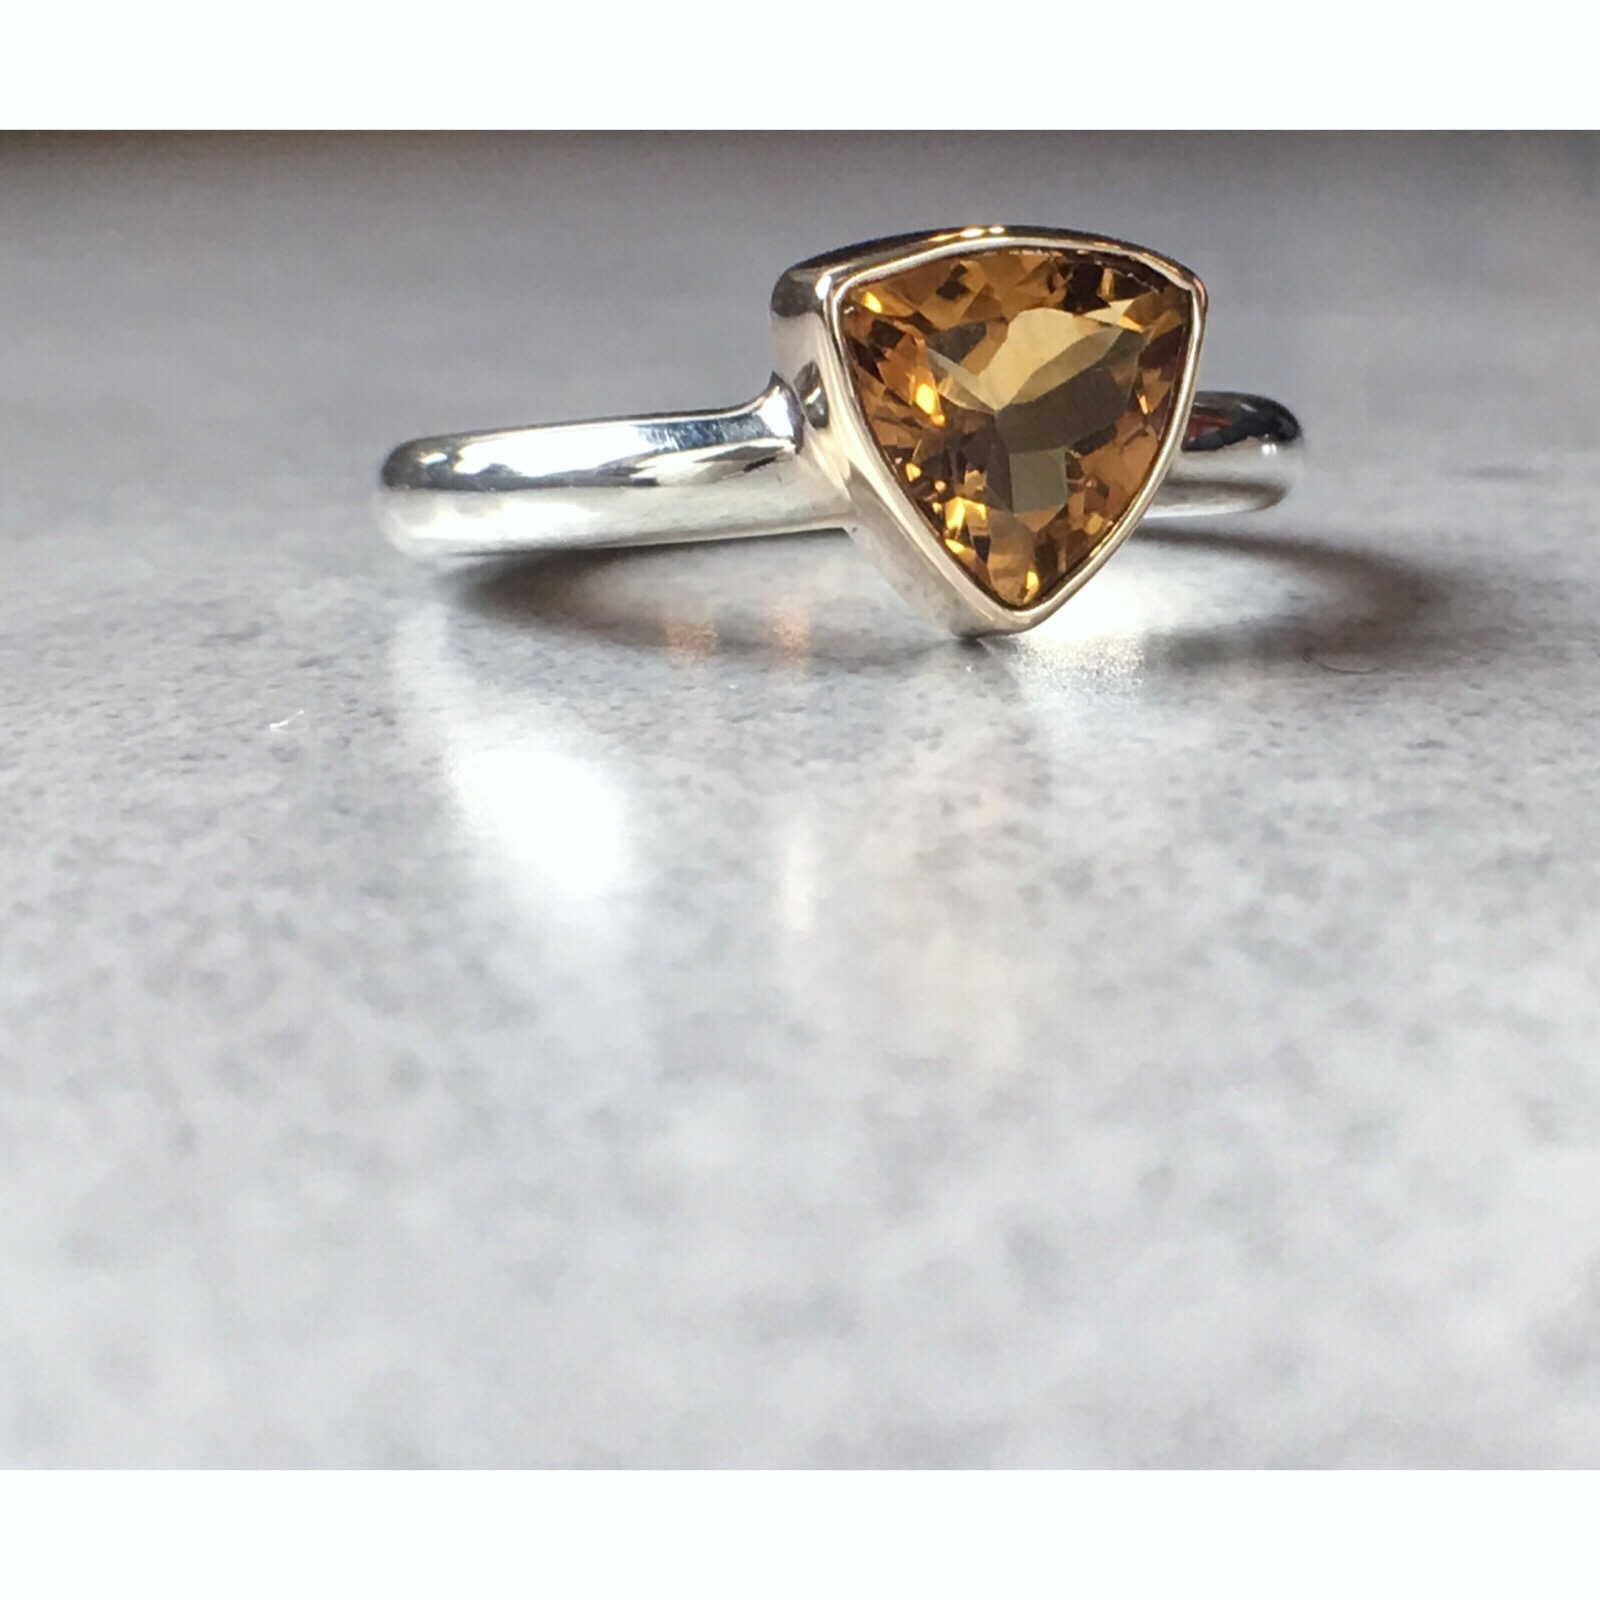 Bespoke Engagement Ring 2019 - 9ct white and yellow gold and a trillion cut citrine stone.